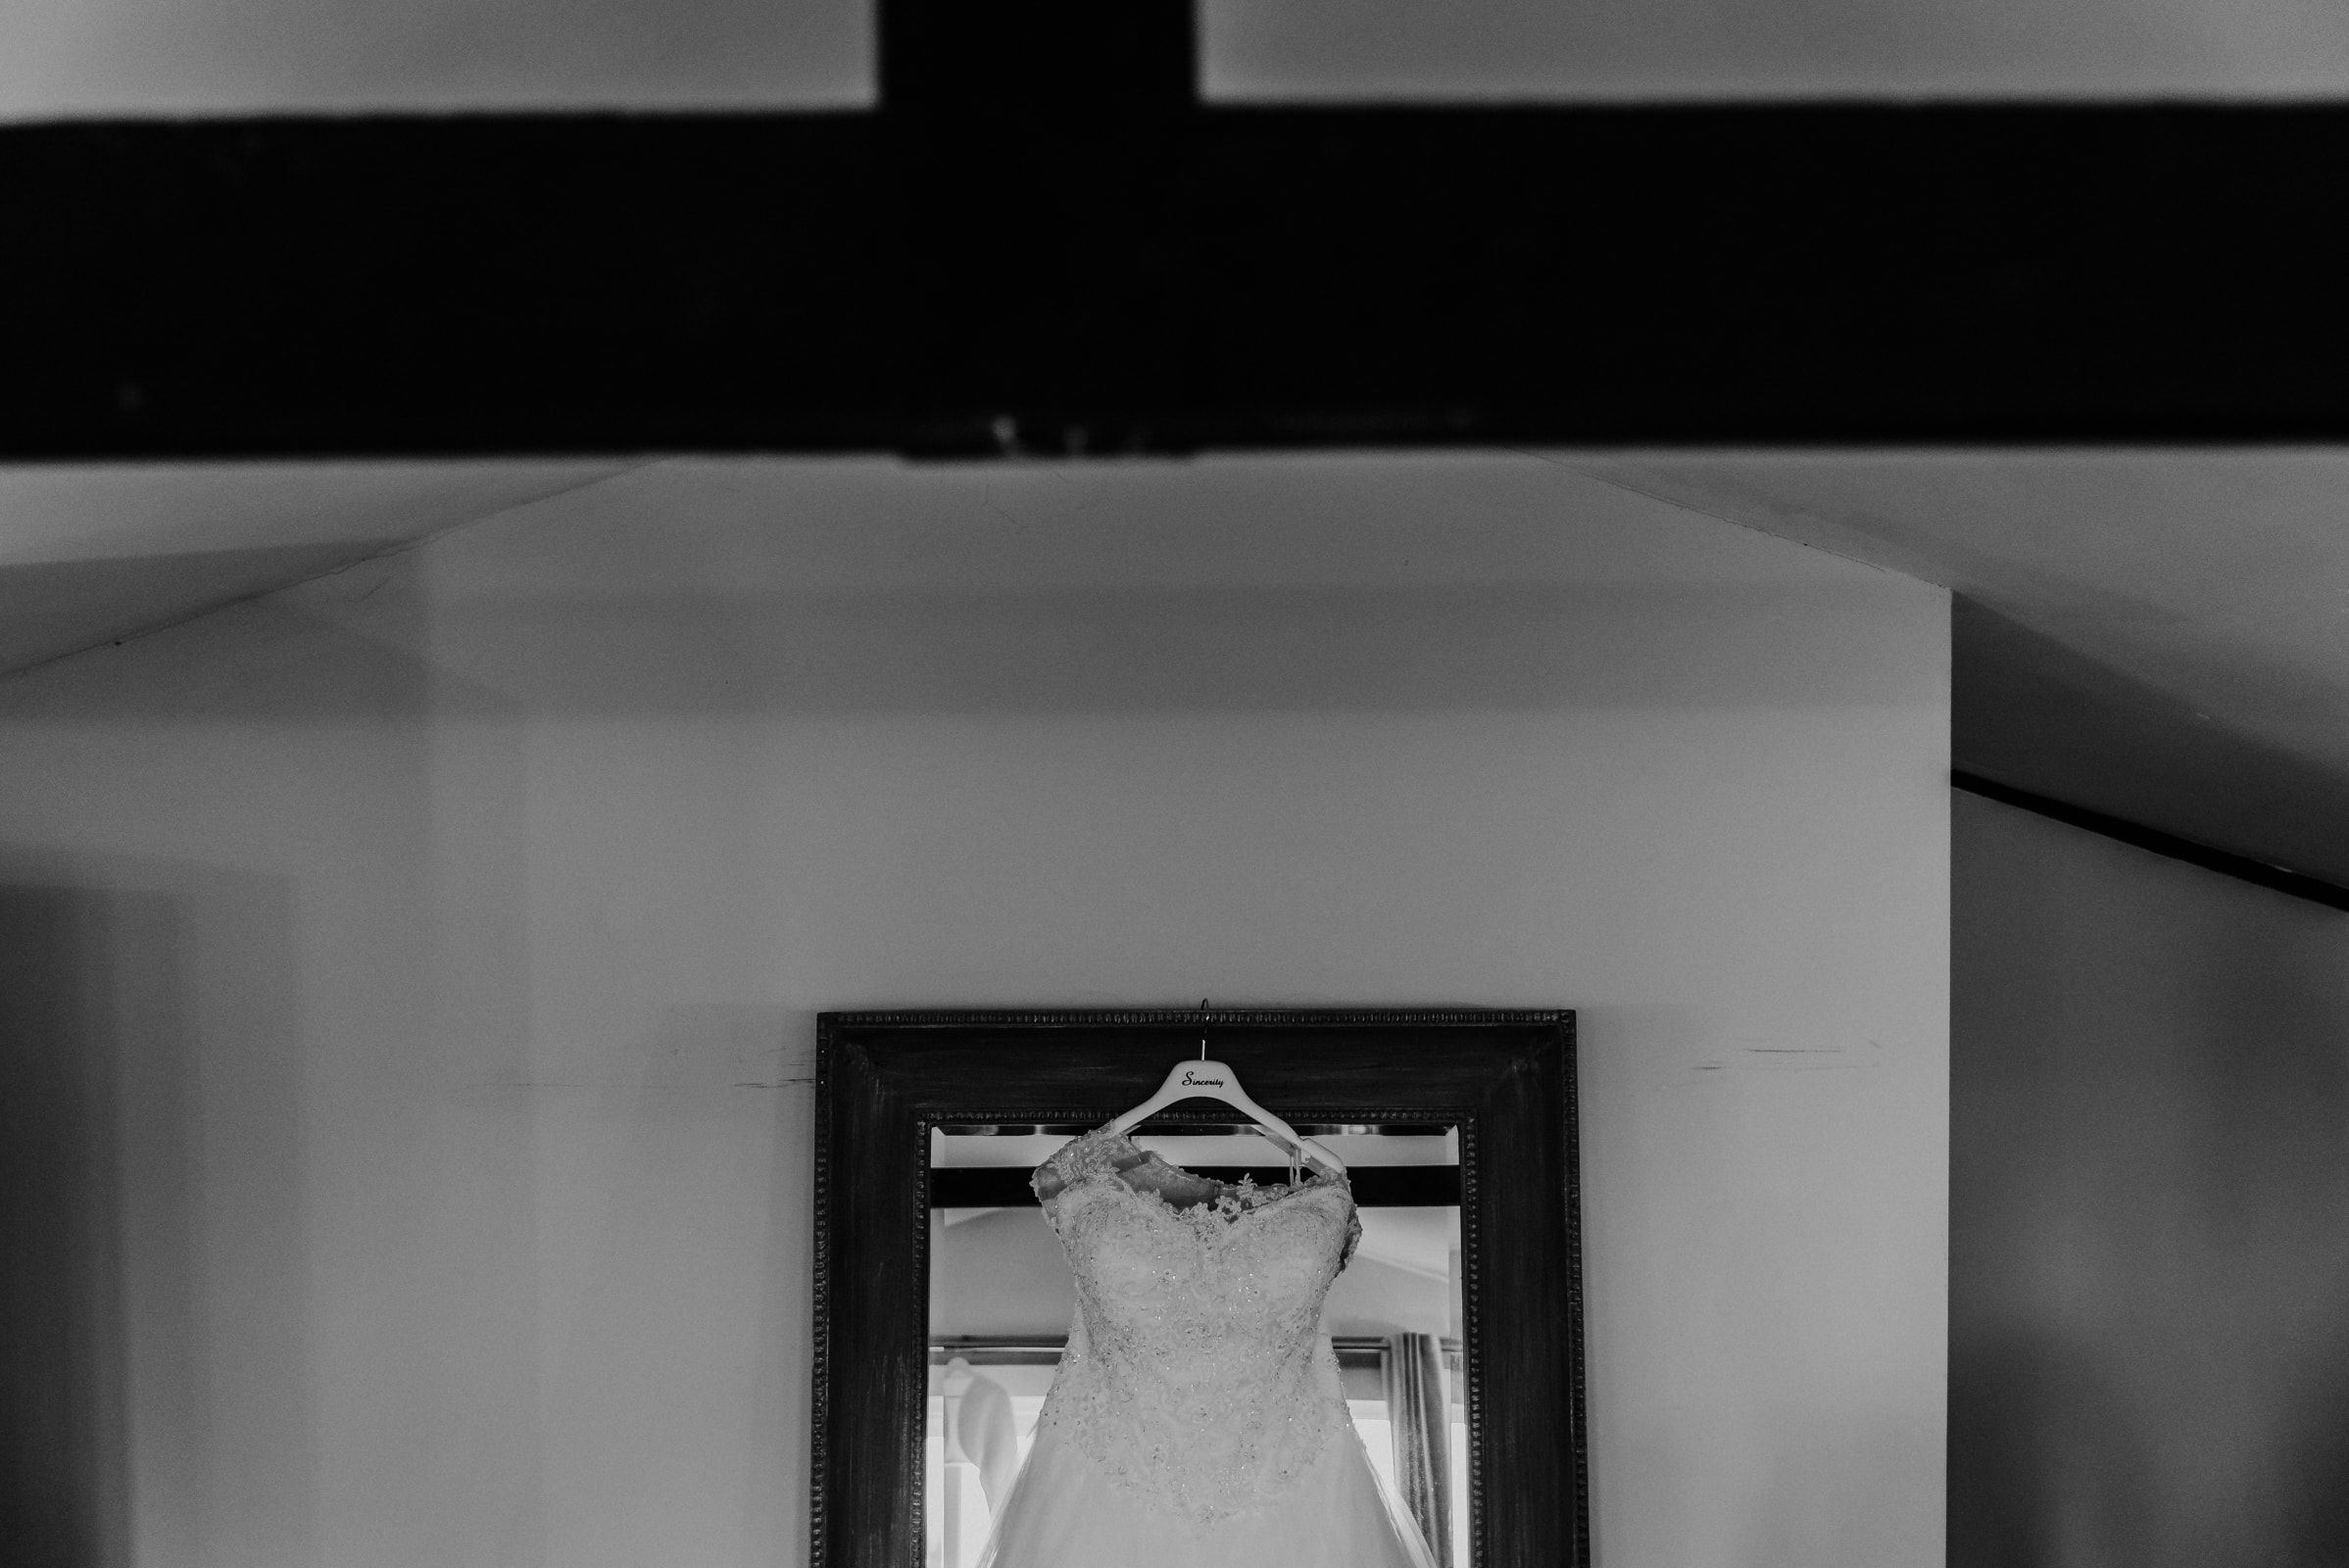 white wedding dressRoshni photography The Milling Barn, Bluntswood Hall, Throcking wedding photographer